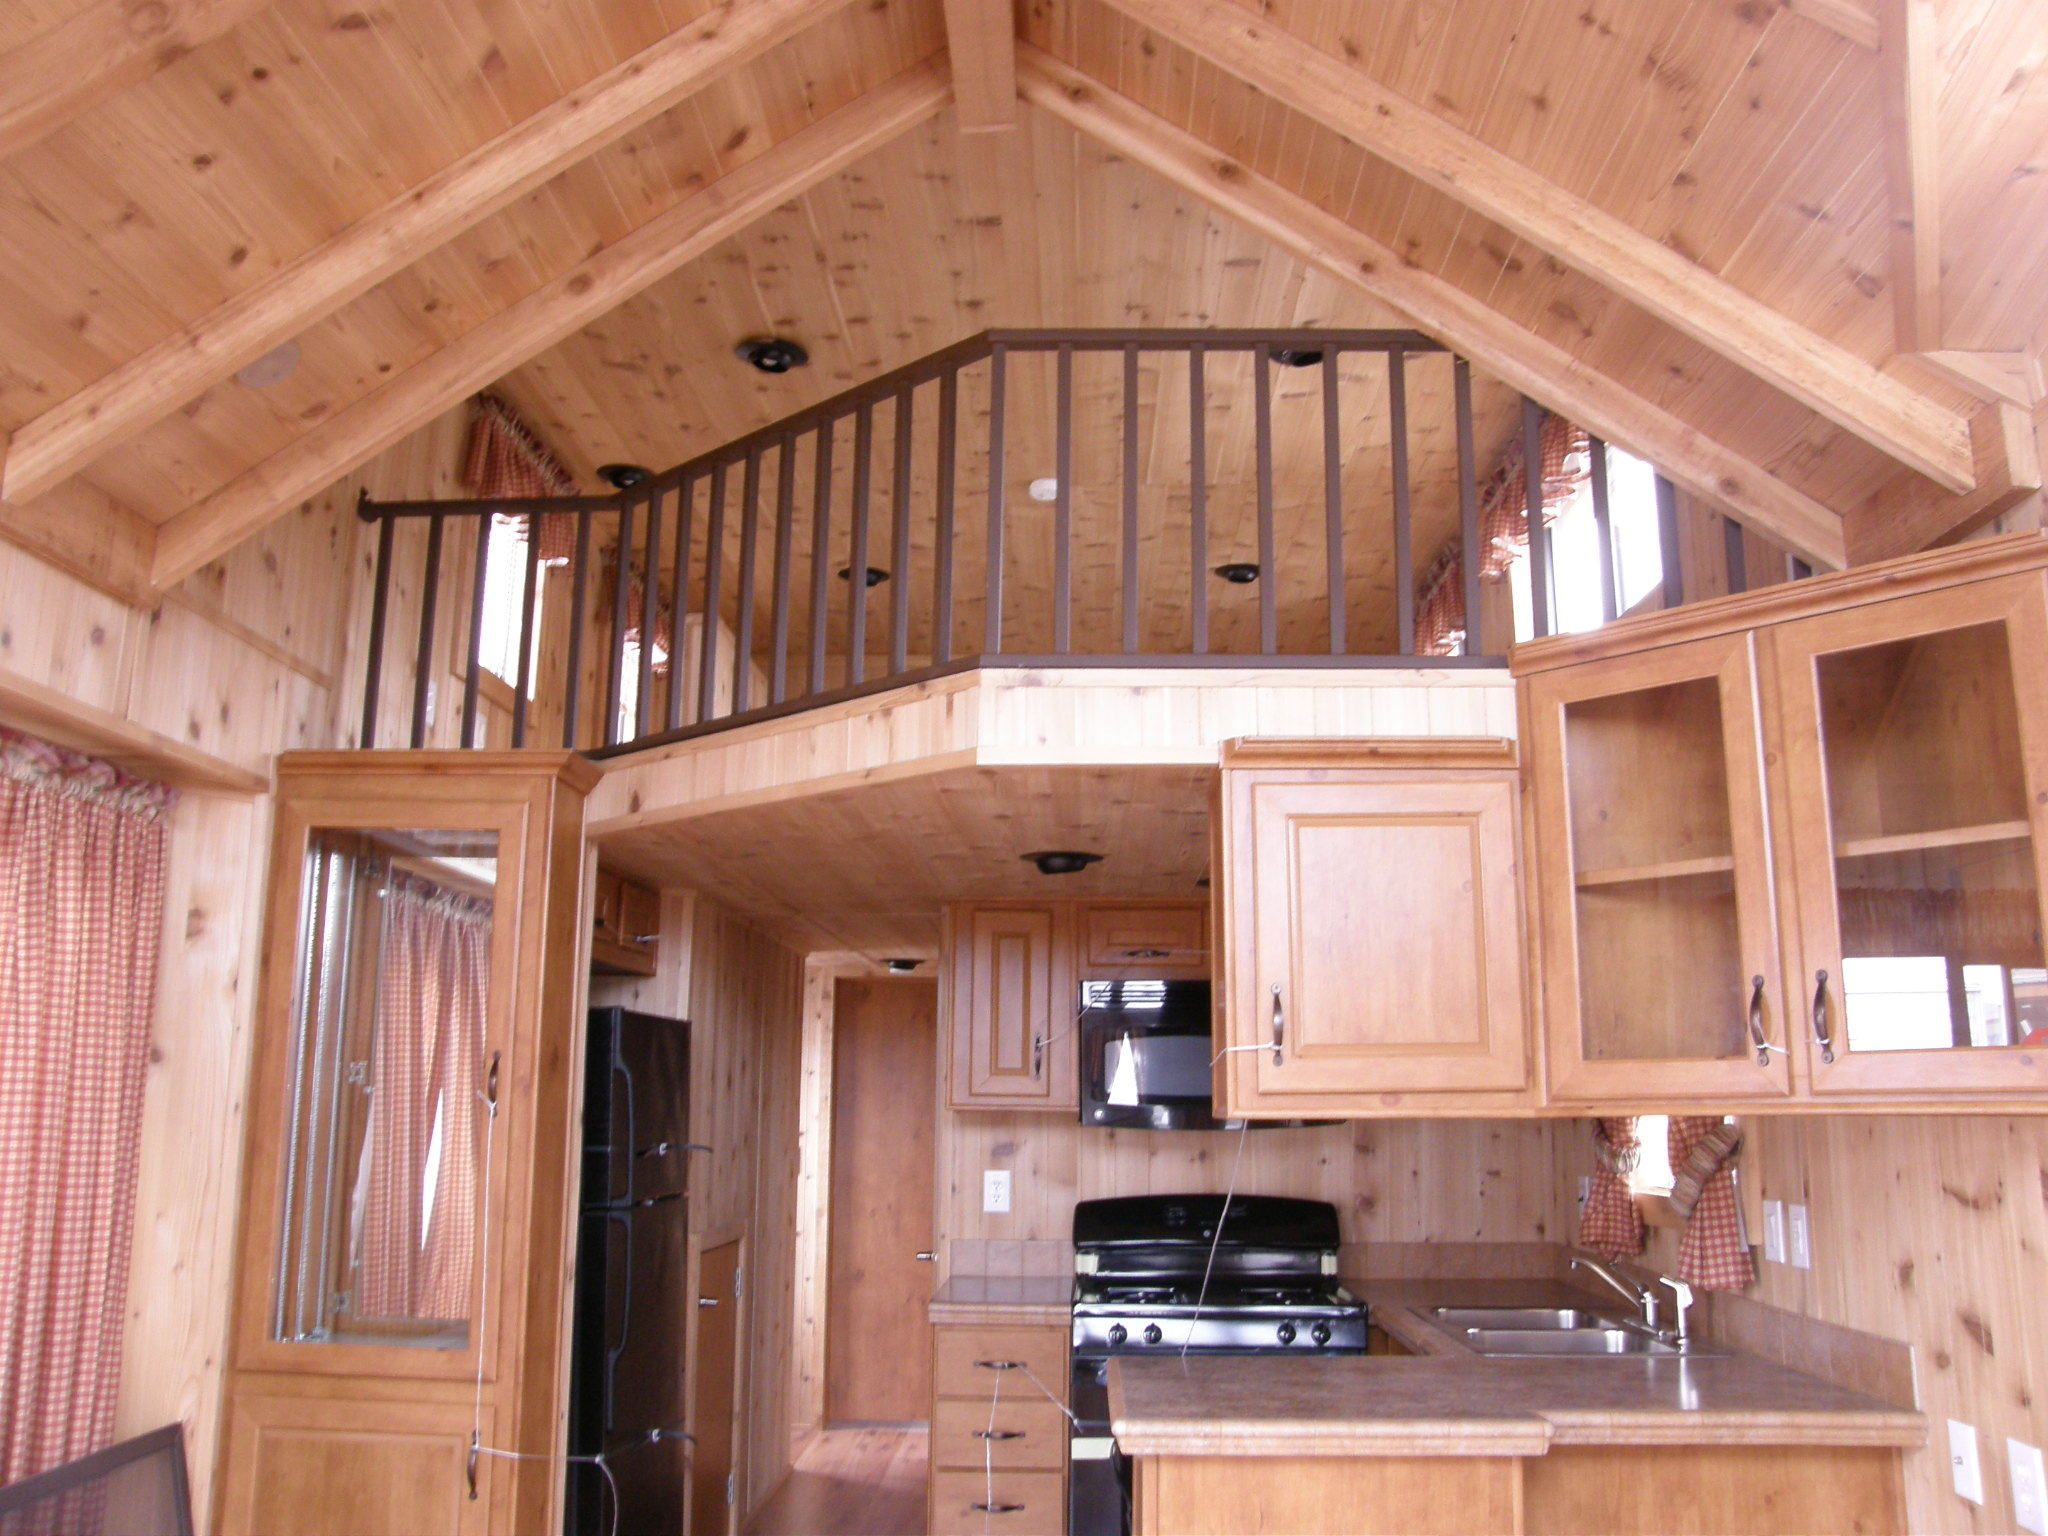 tiny house inside best ideas about inside tiny houses on - Tiny House Inside